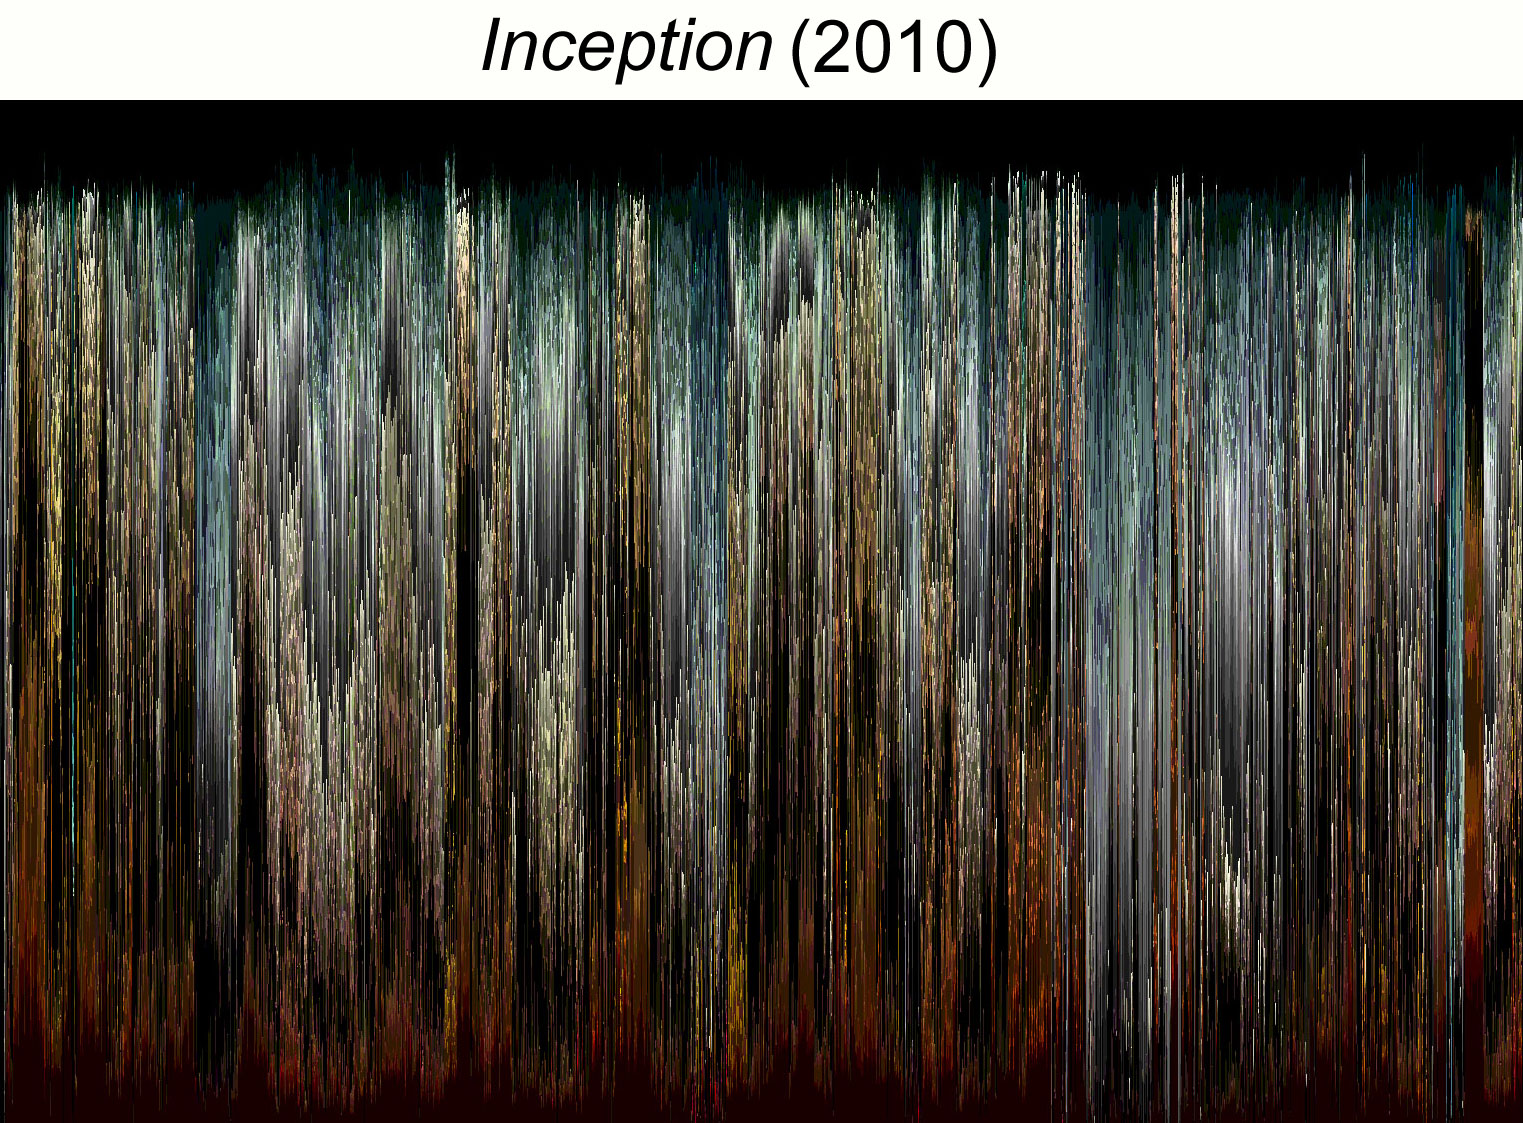 James e cutting department of psychology cornell university inception frame by frame jeuxipadfo Image collections